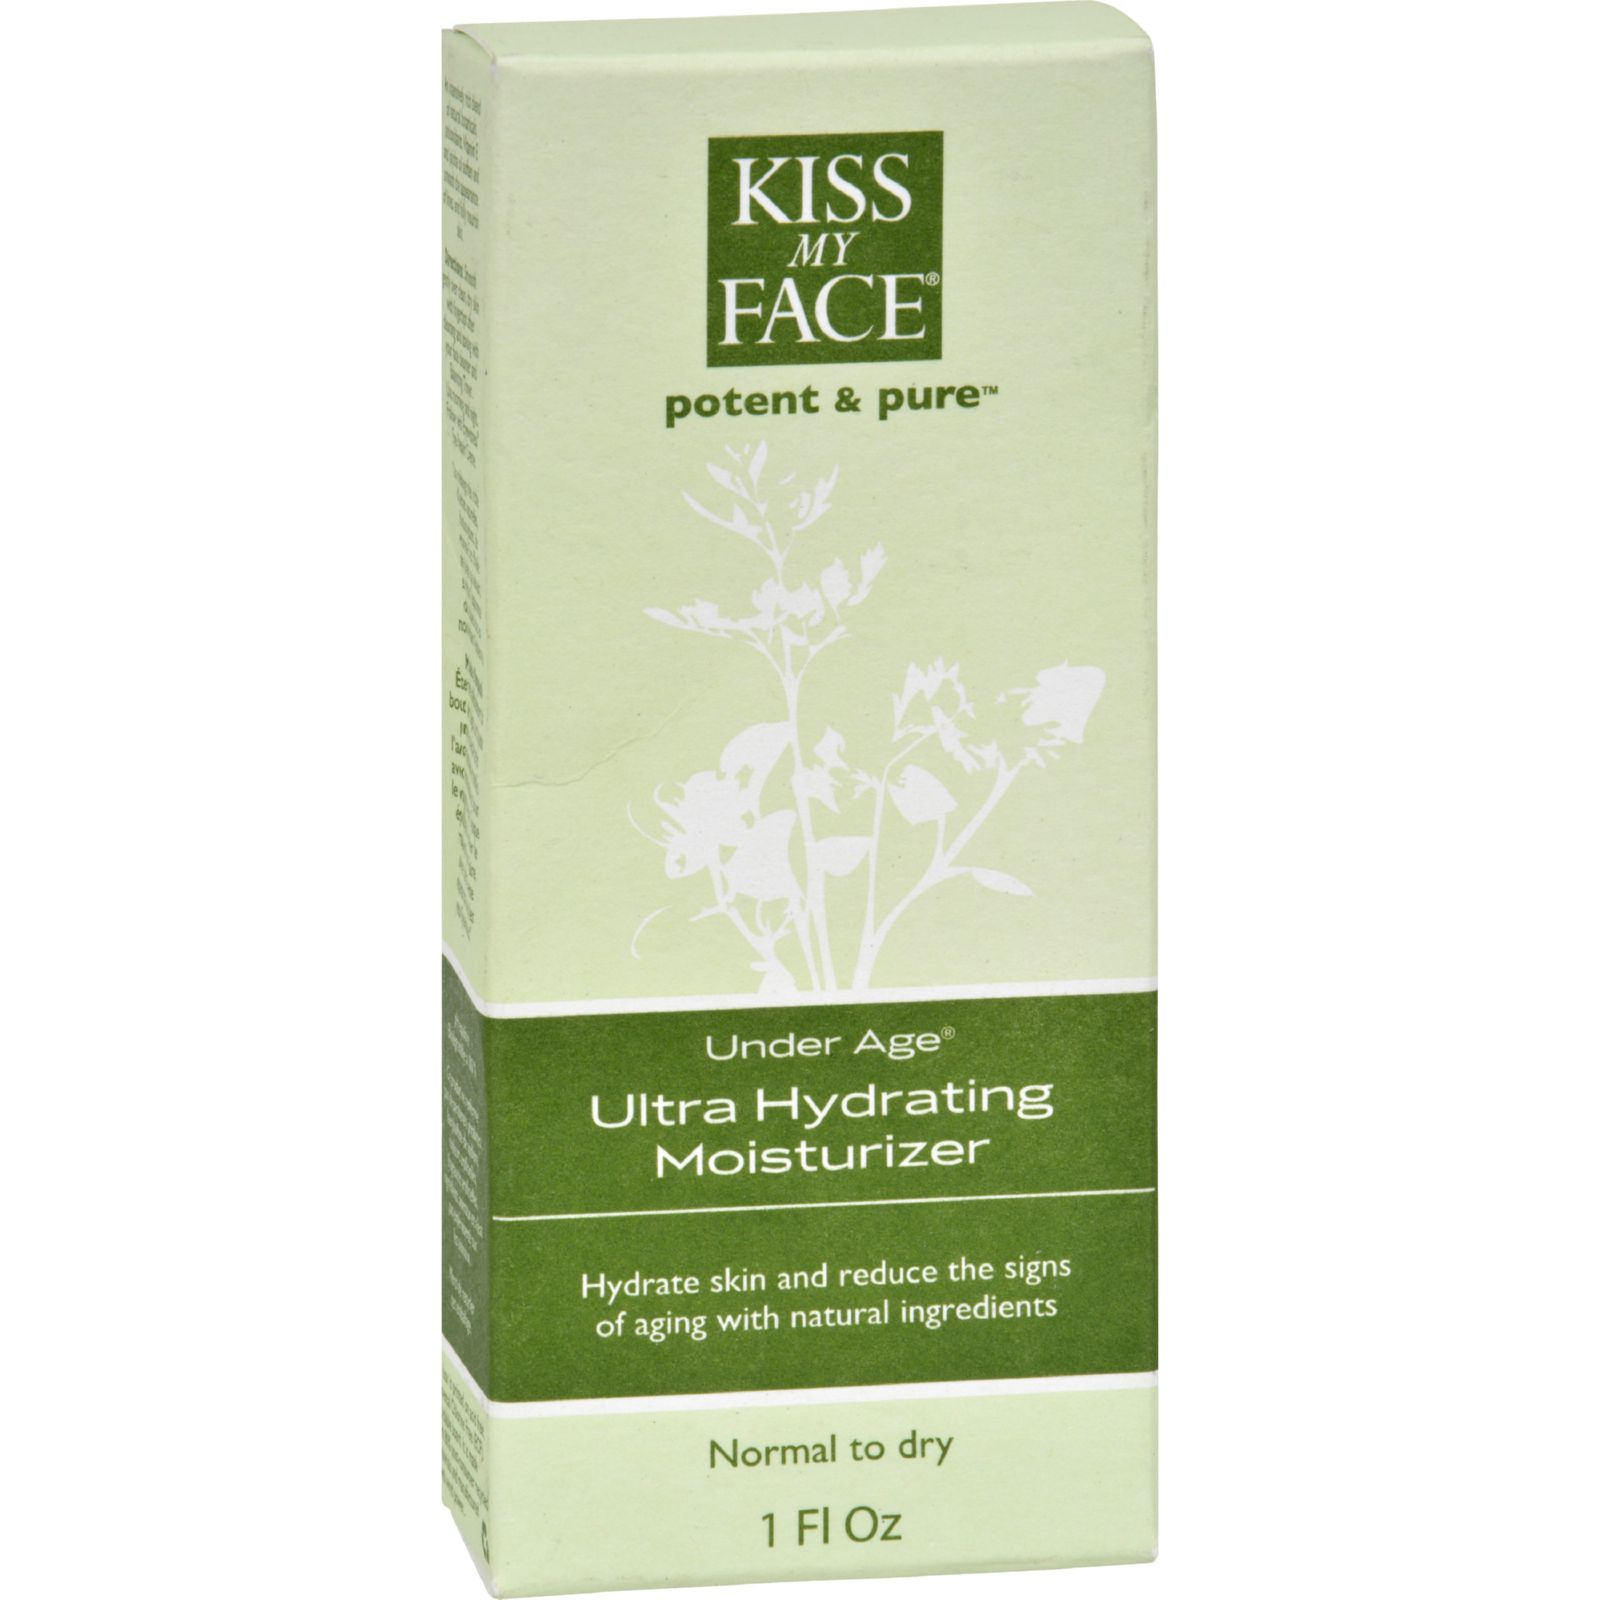 Kiss My Face Ultra Moisturizer Under Age - 1 Fl Oz